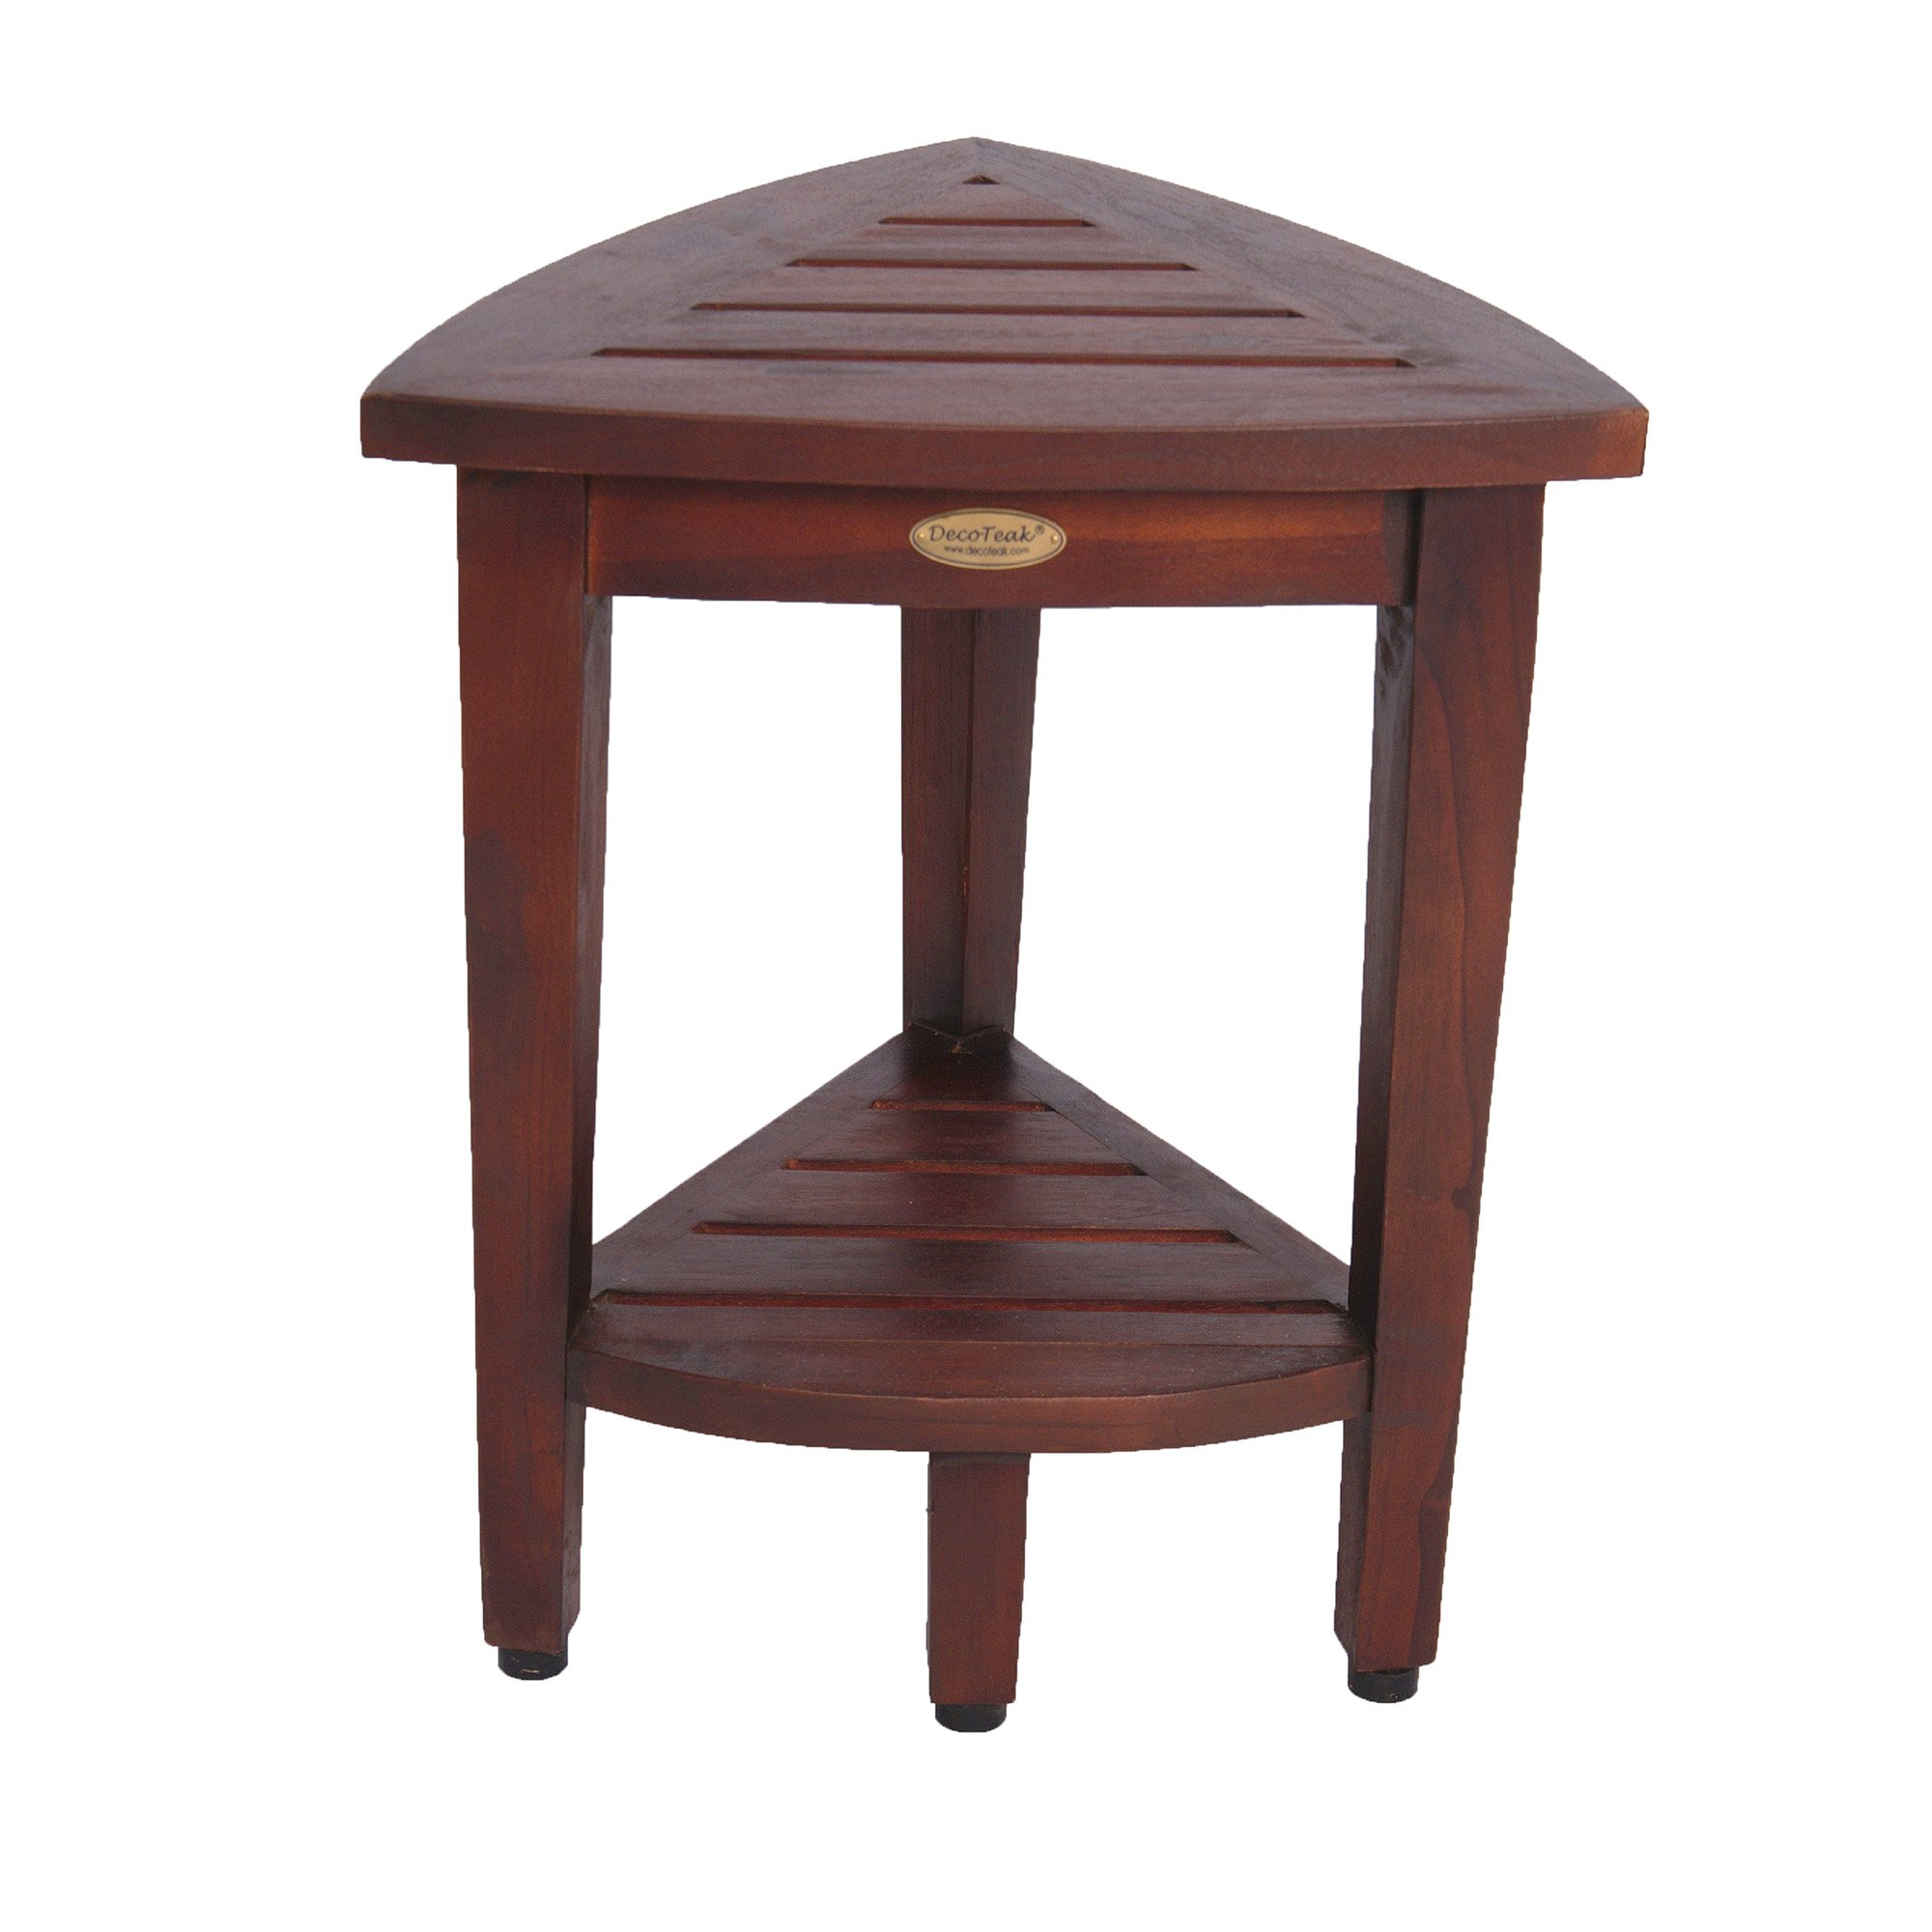 chairs shower most cedar footstool corner folding benches very bench stool bathroom drop teak for stools pvc seat down chair wood good solid and best chrome small canada steam